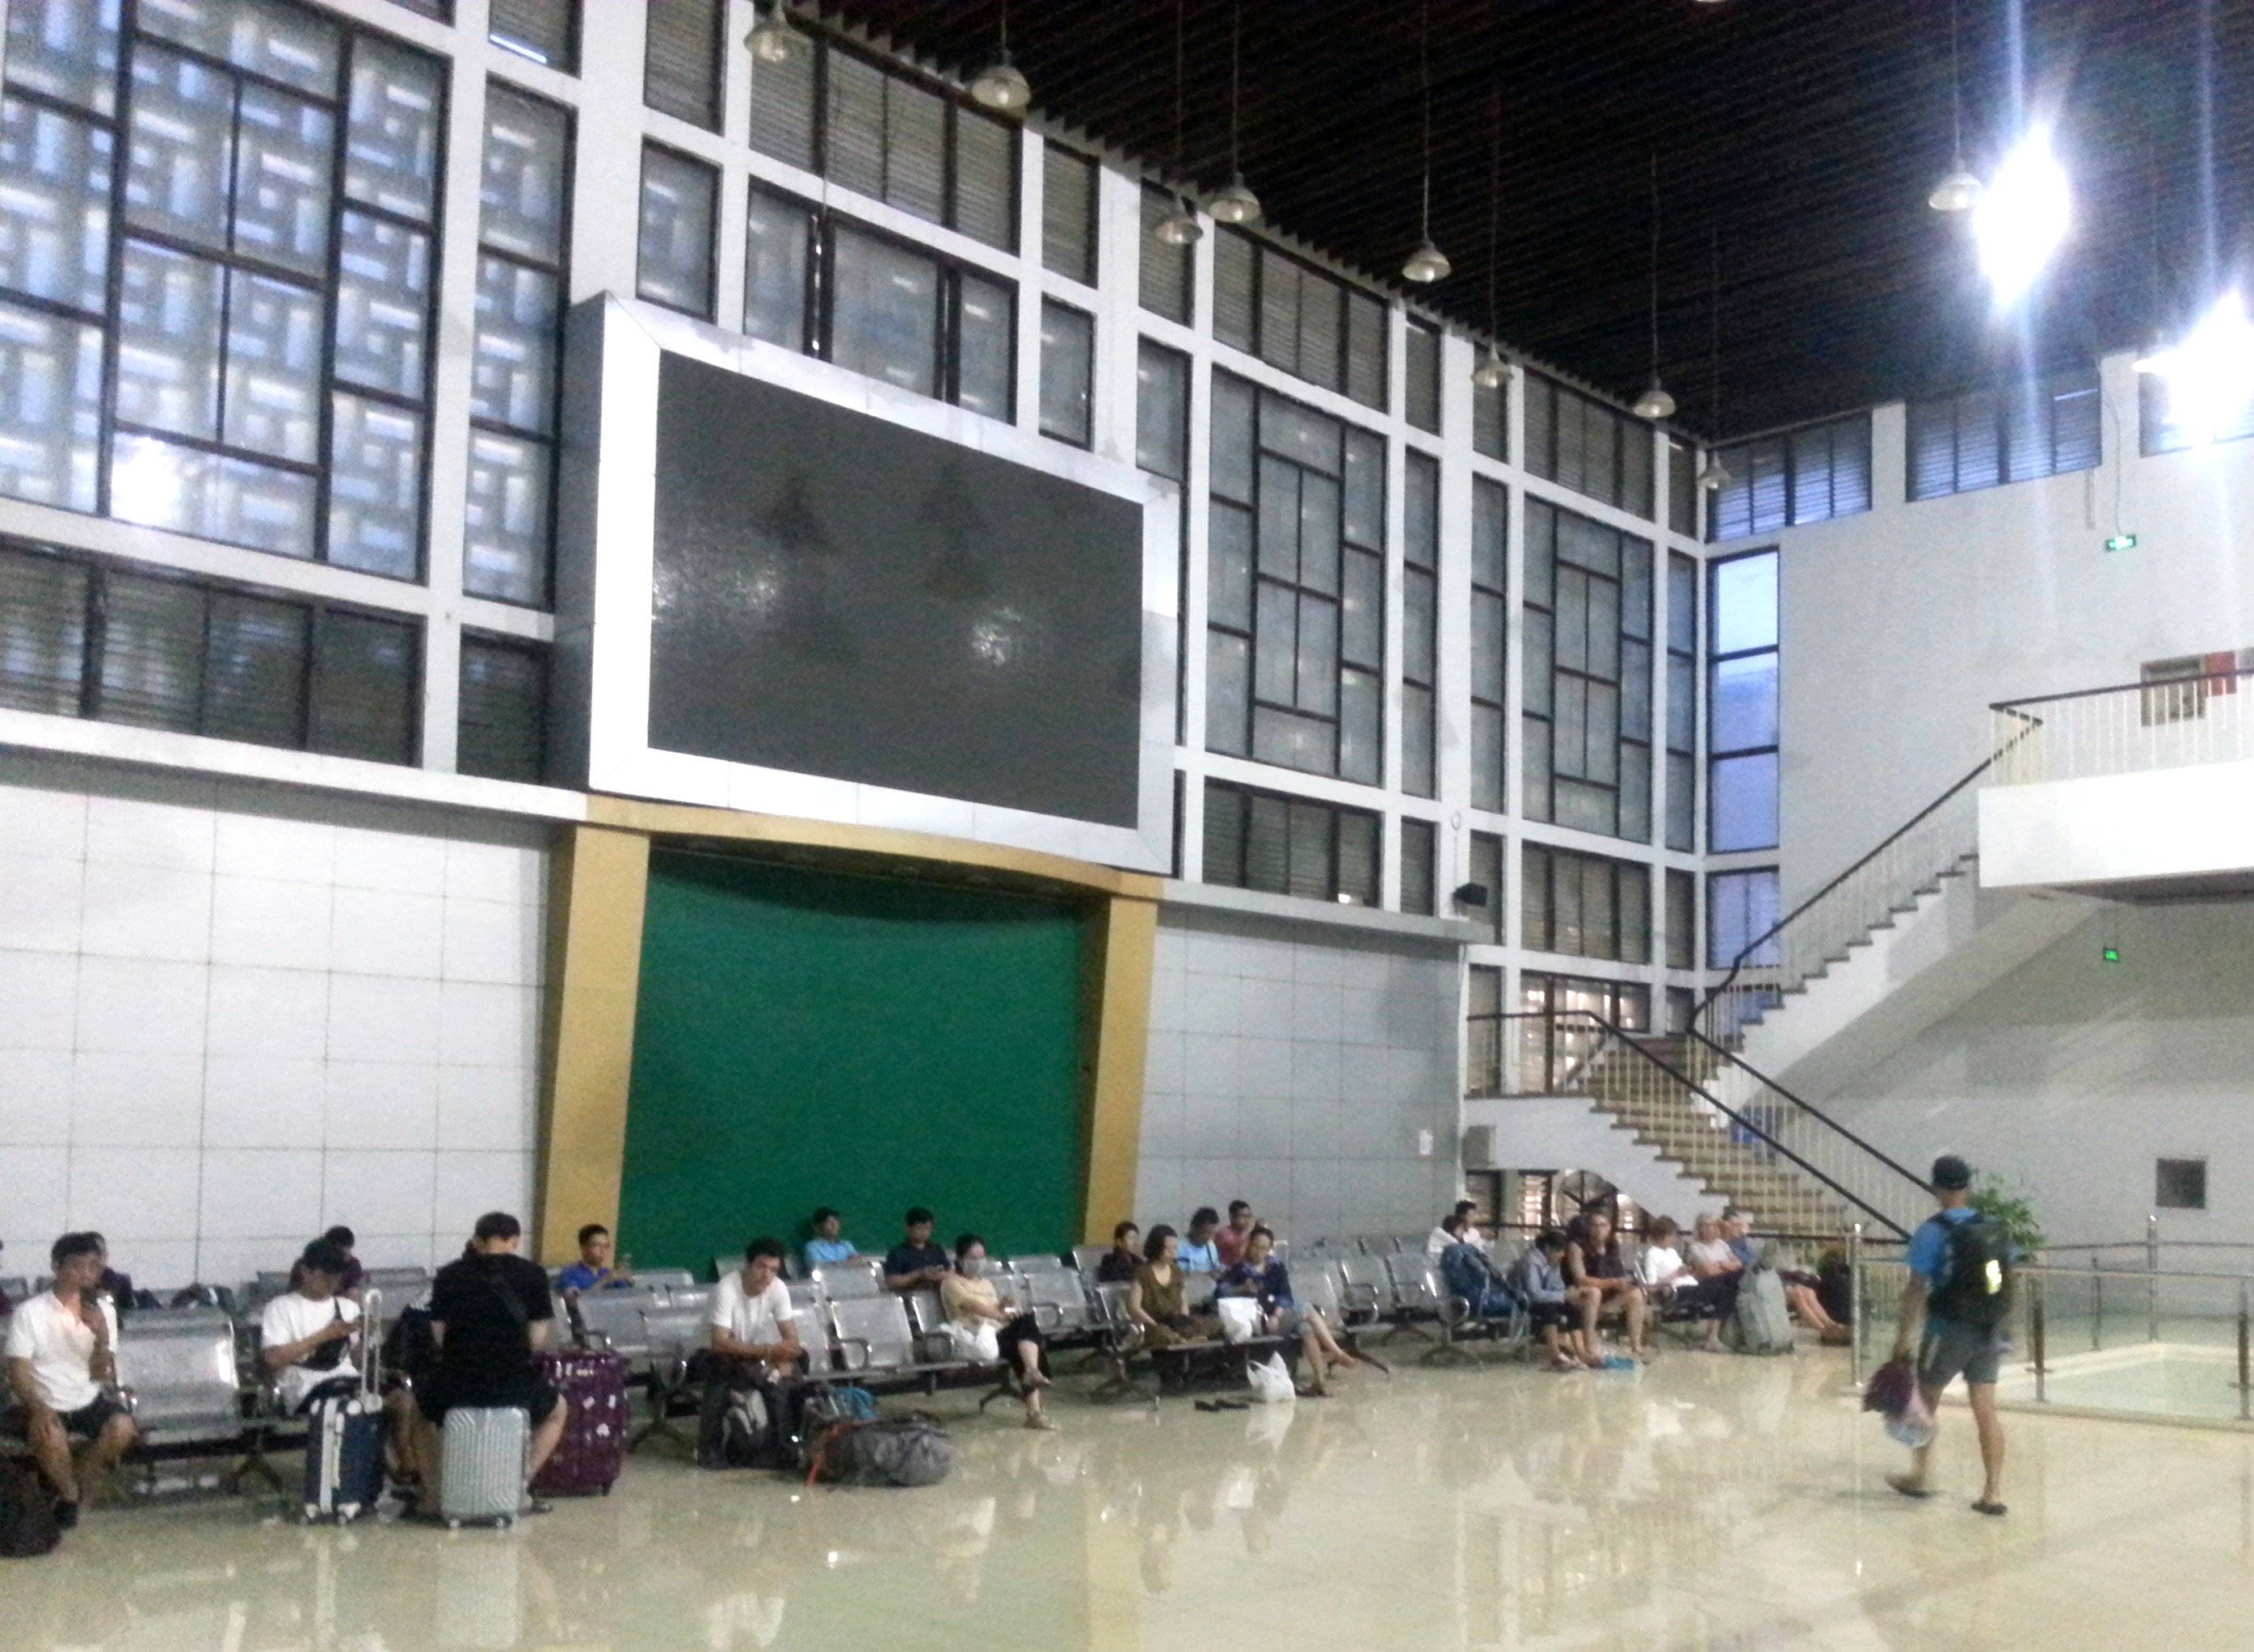 Upstairs waiting area at Hanoi Railway Station